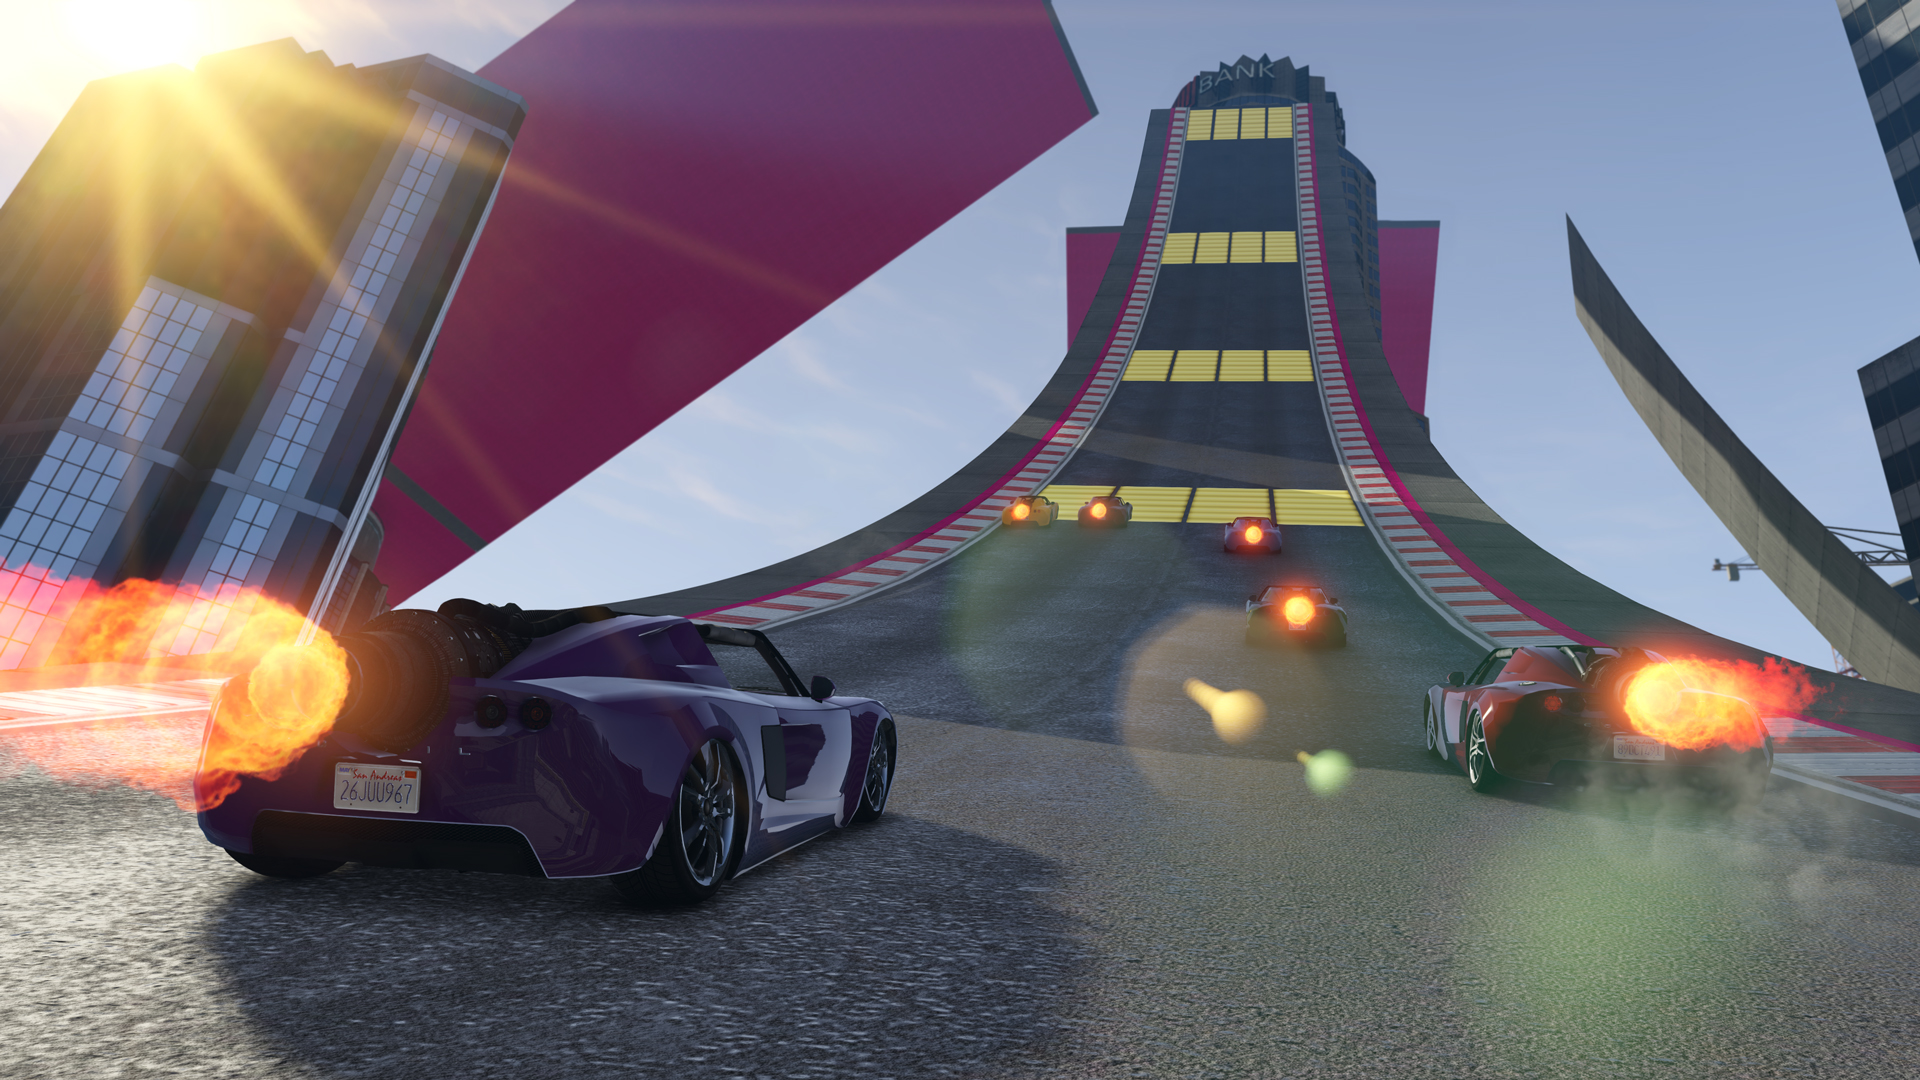 GTA Online - New Cars, Circuits, Modes and more content